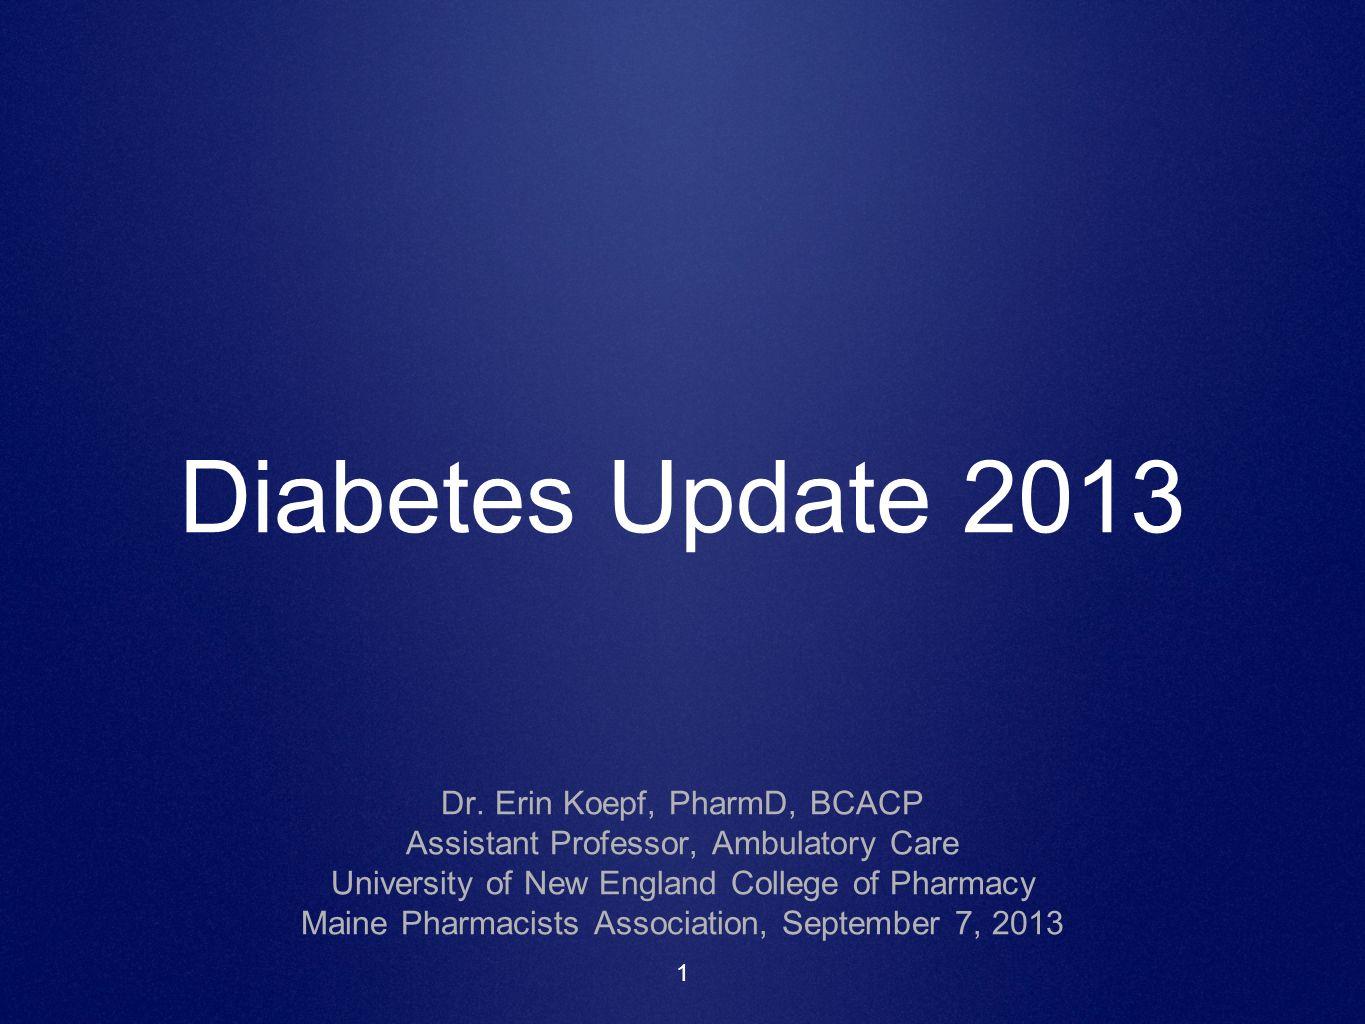 Diabetes Update 2013 Dr. Erin Koepf, PharmD, BCACP